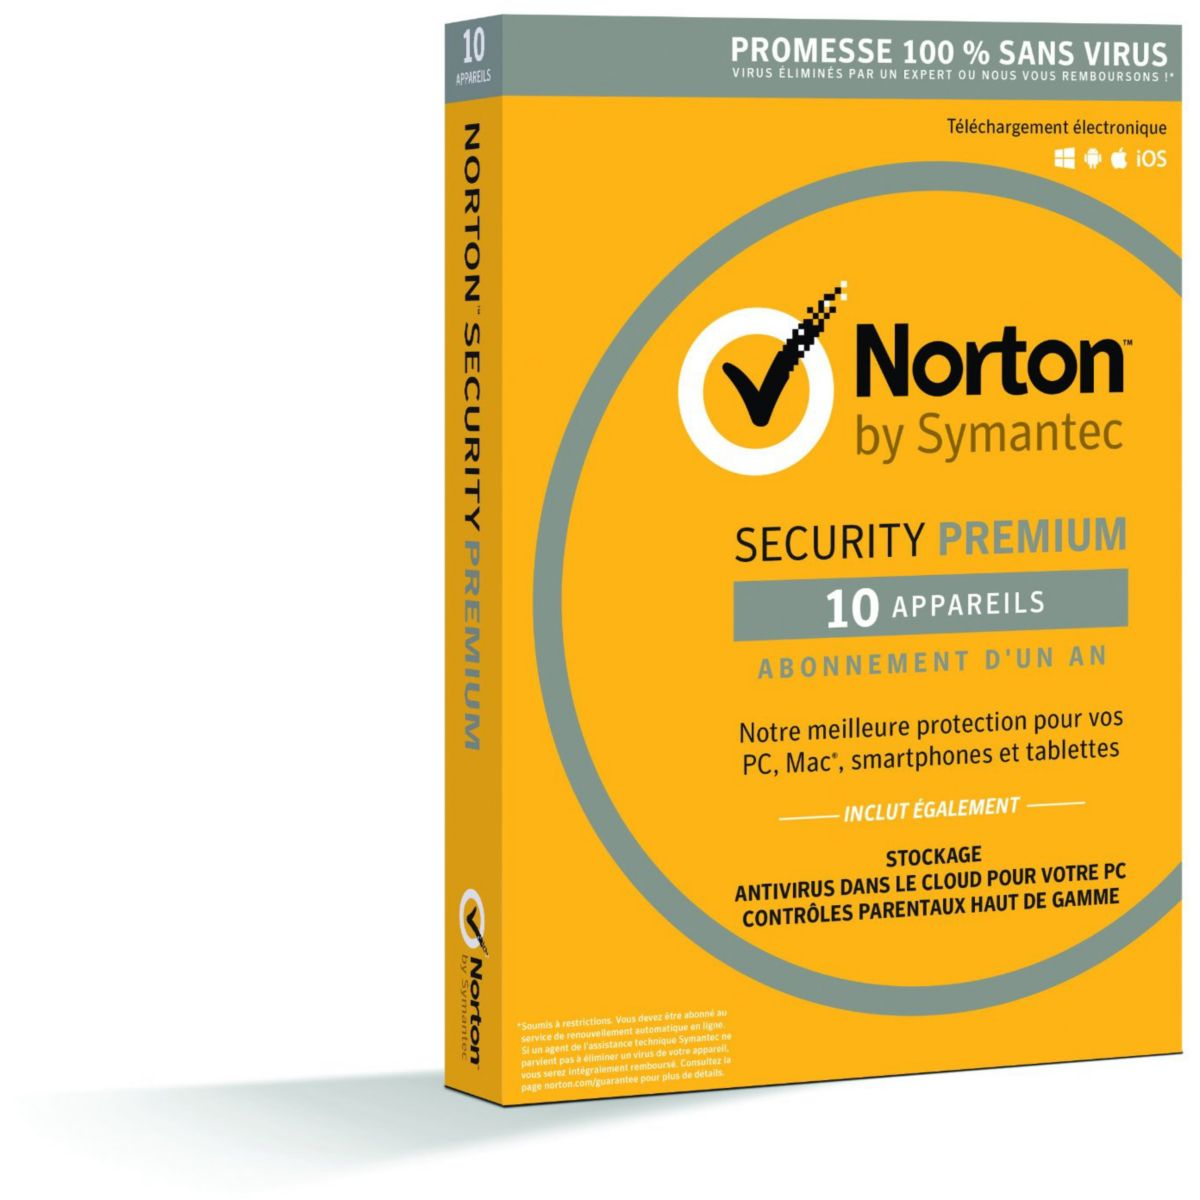 Logiciel antivirus et optimisation SYMANTEC Norton Security 2016 10 postes